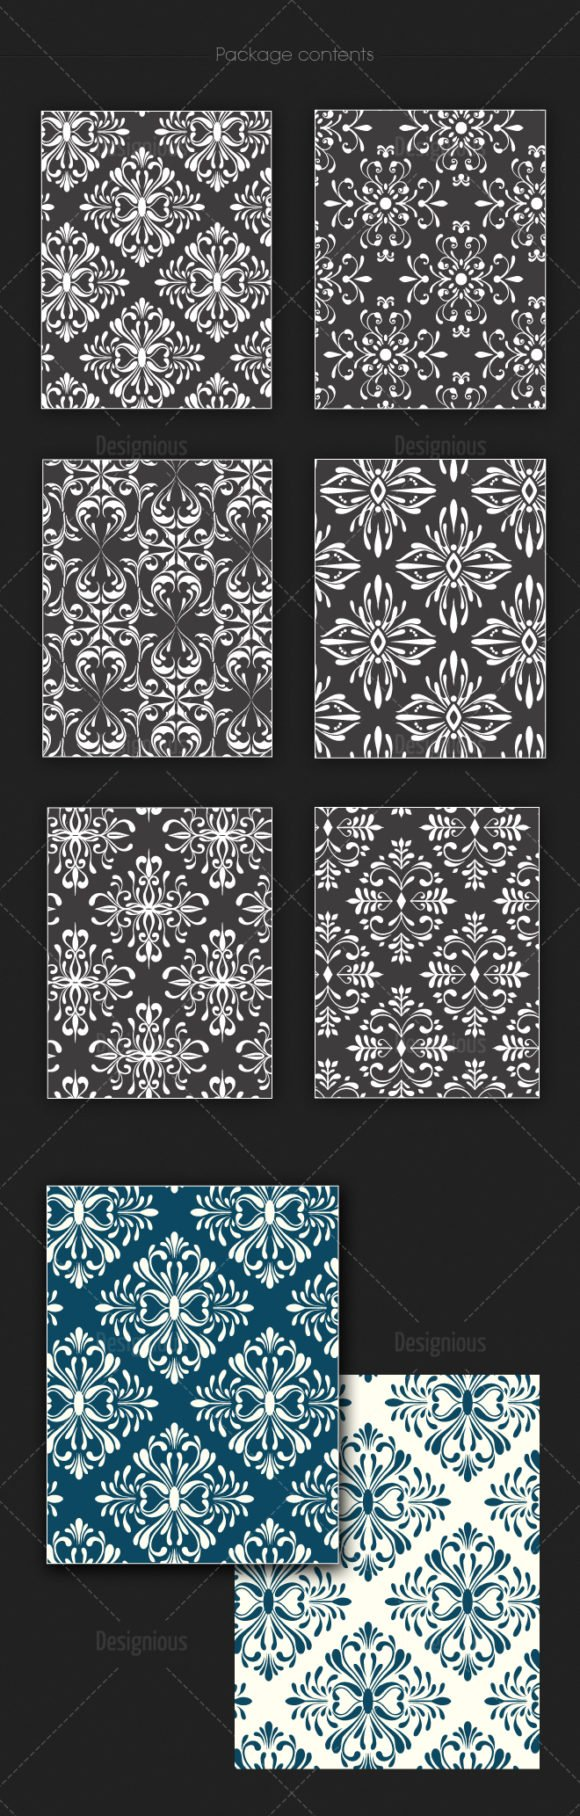 Free Seamless Patterns Vector Pack 127 2